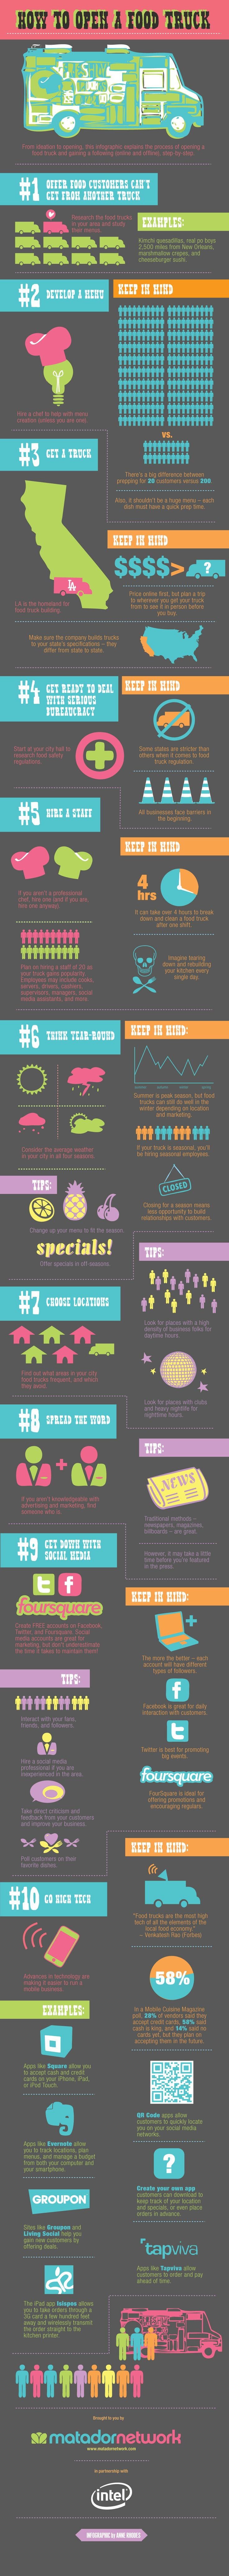 How to open a food truck [Infographic] - Matador Network